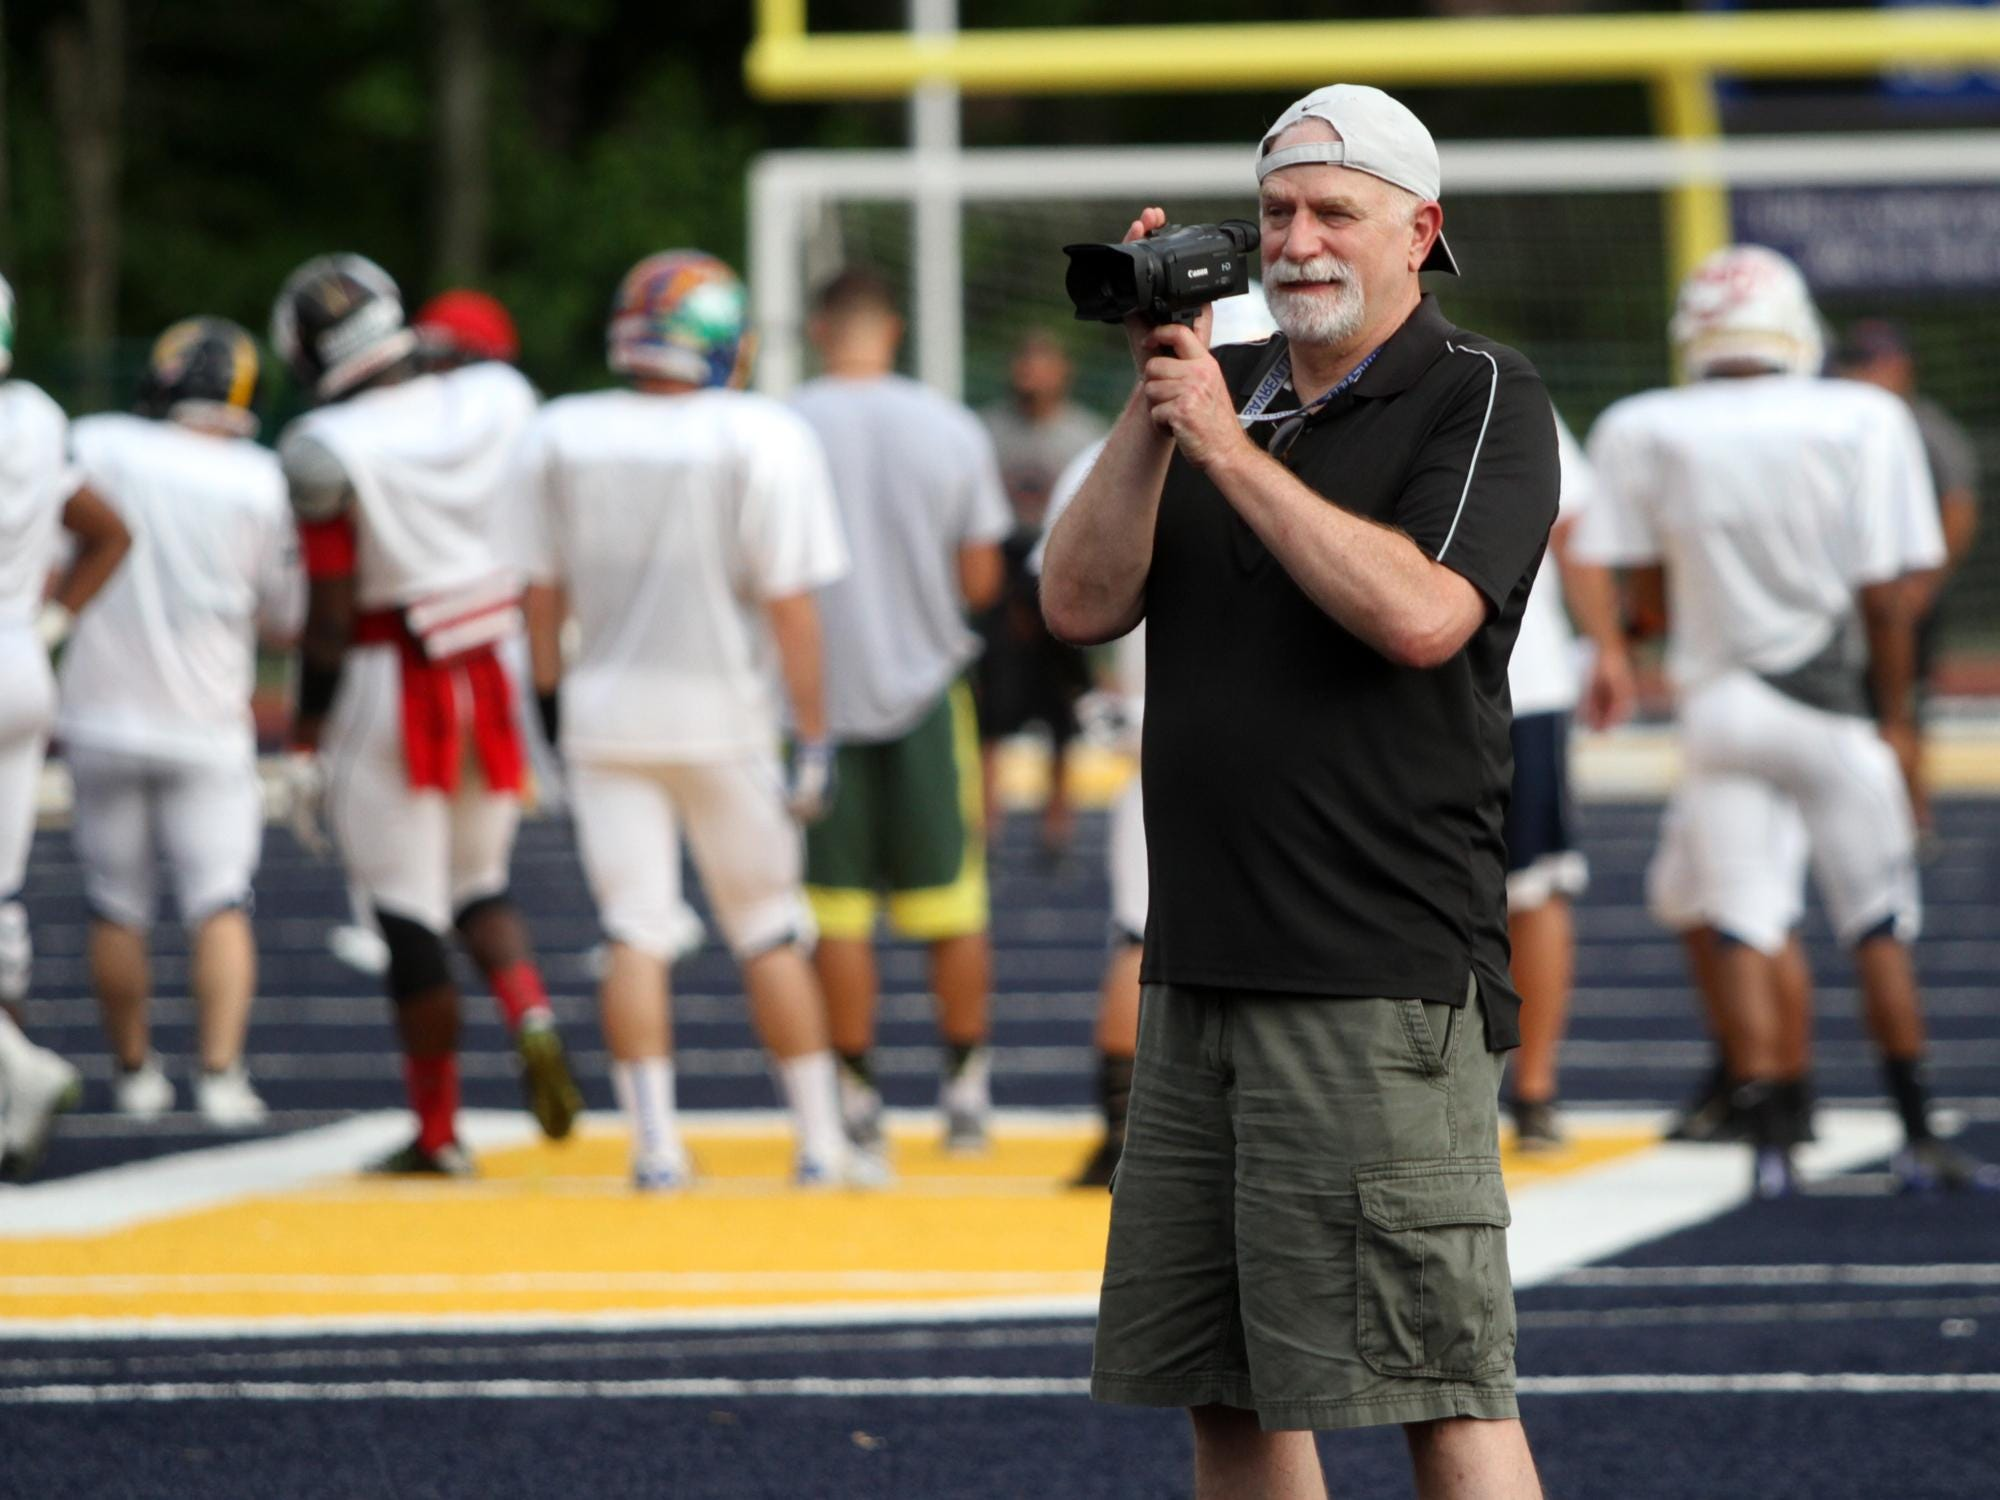 Videographer Joe DaRold tapes football players while they practice for Snapple Bowl XXII, Wednesday, July 8, 2015, at Colonia High School in Woodbridge, NJ.